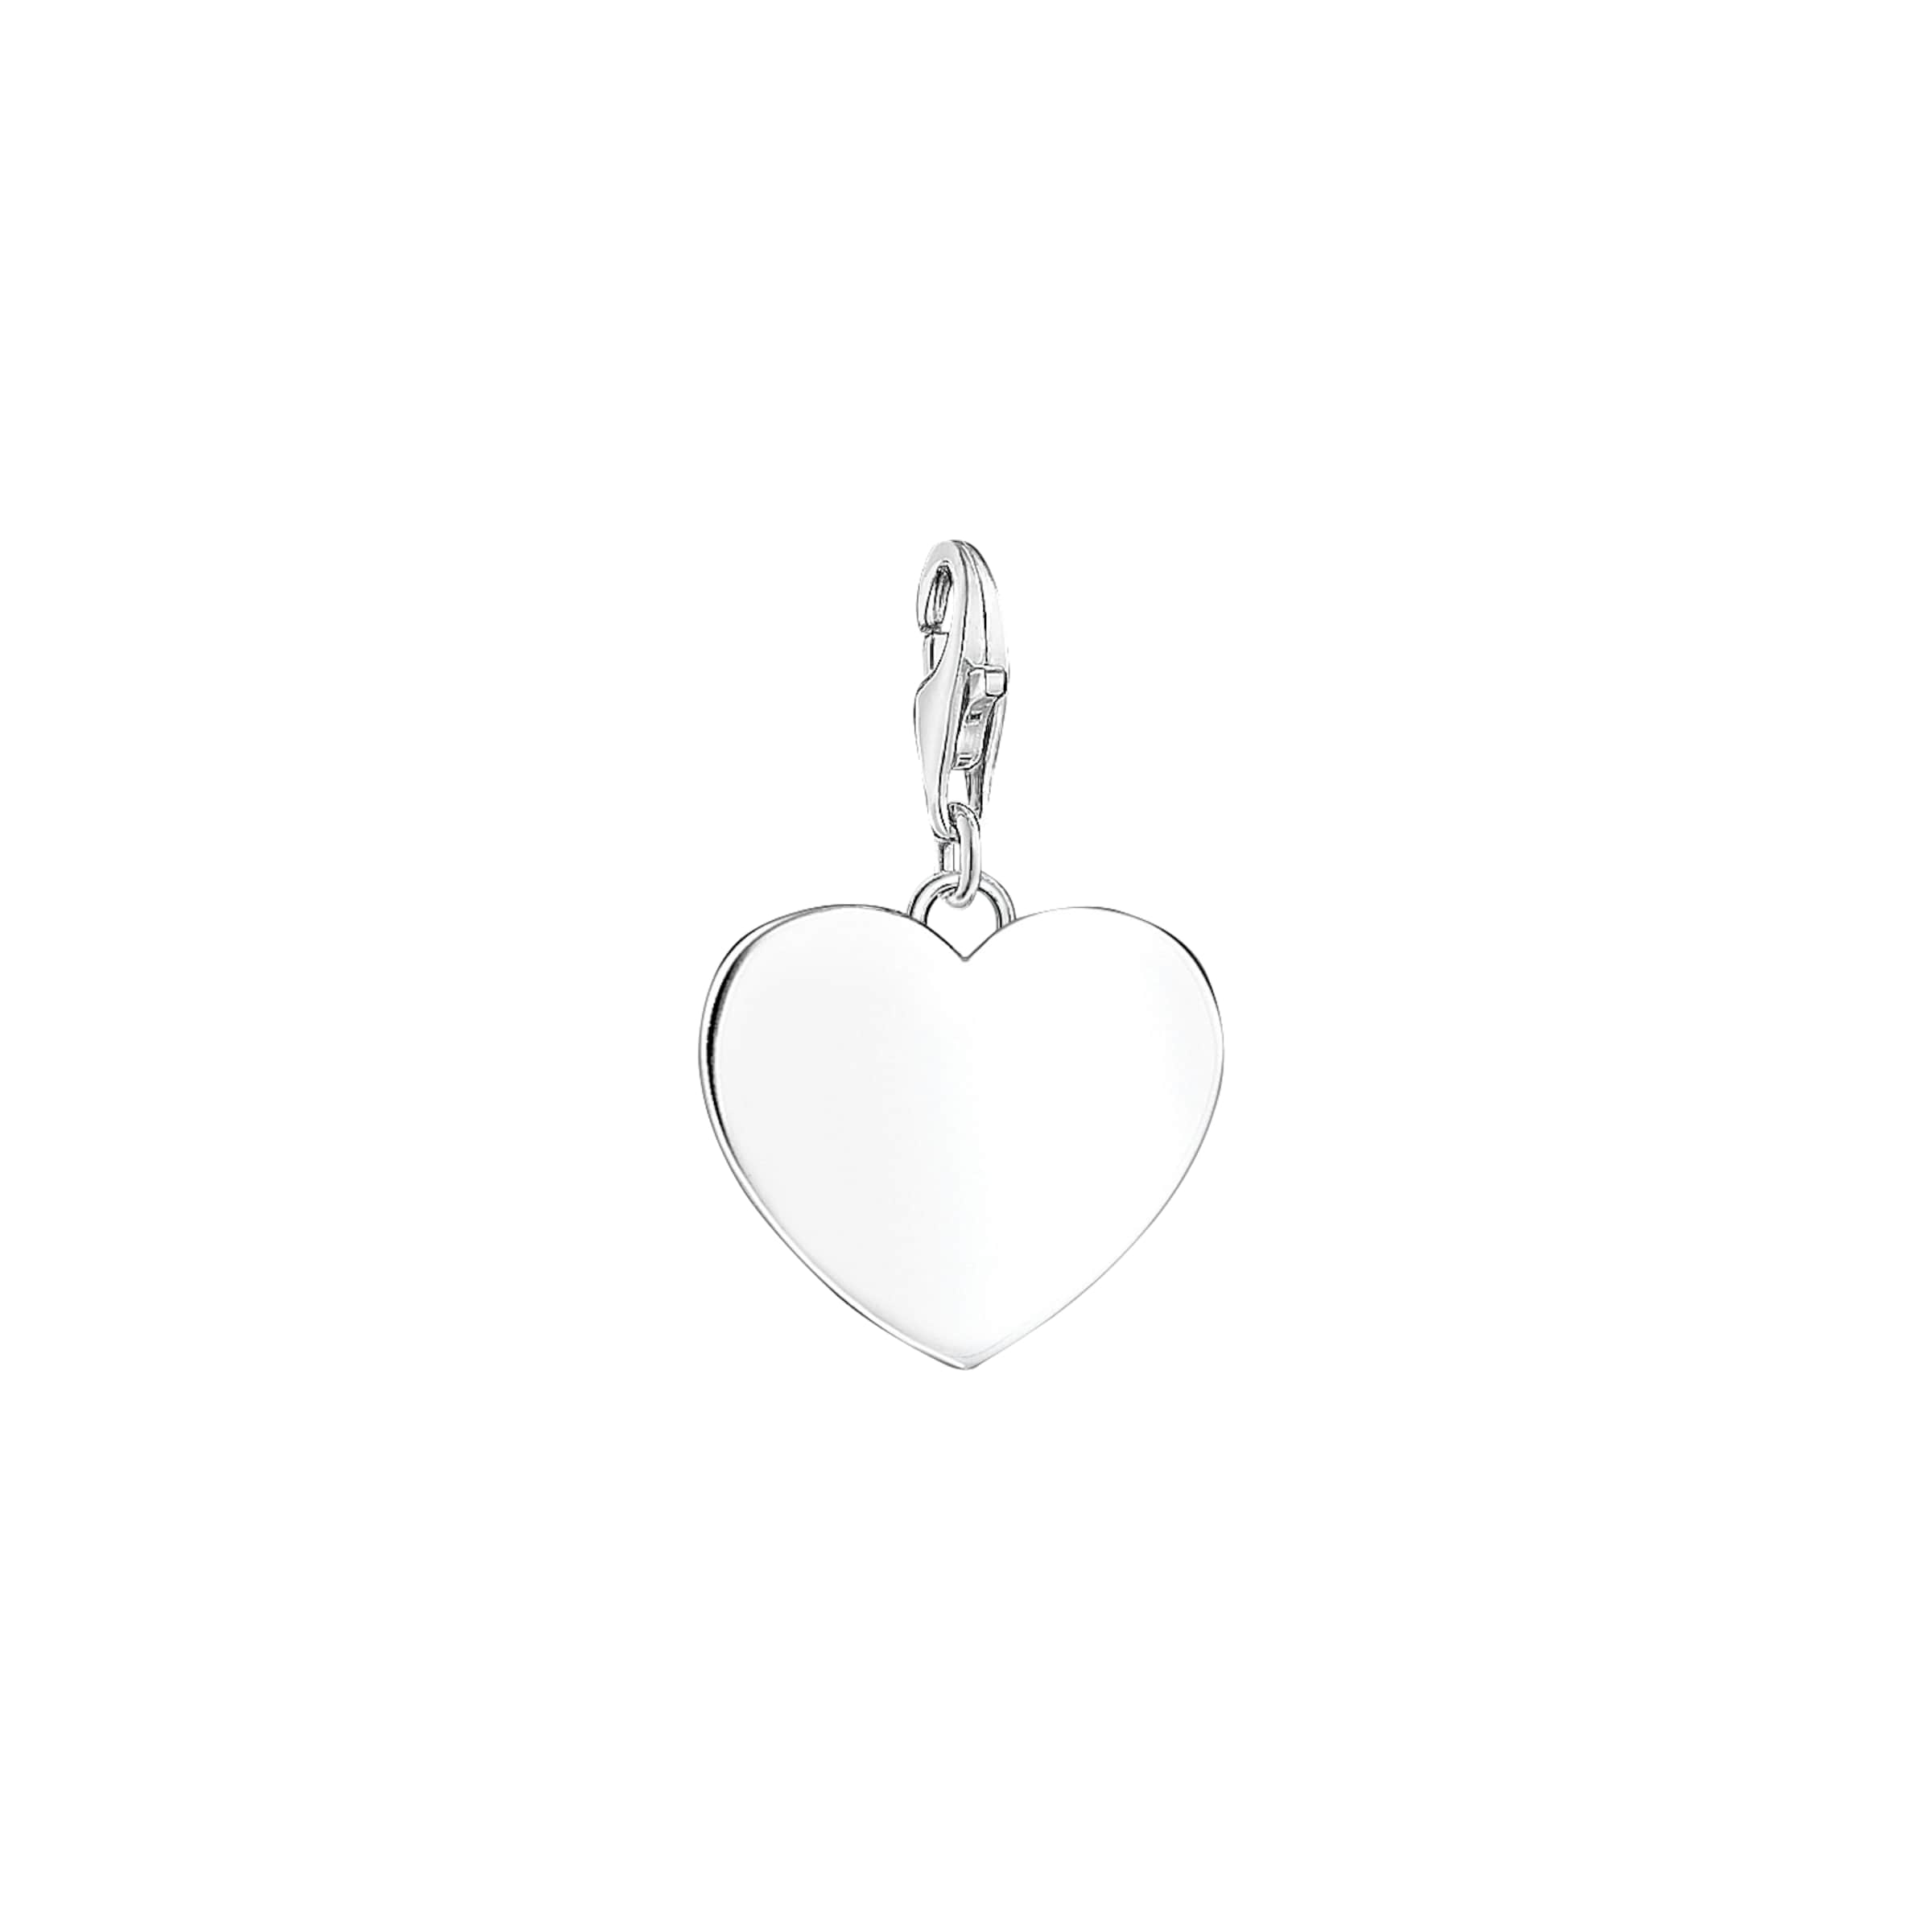 In Charm anhänger 'herz' Thomas Sabo Silber bf76gy